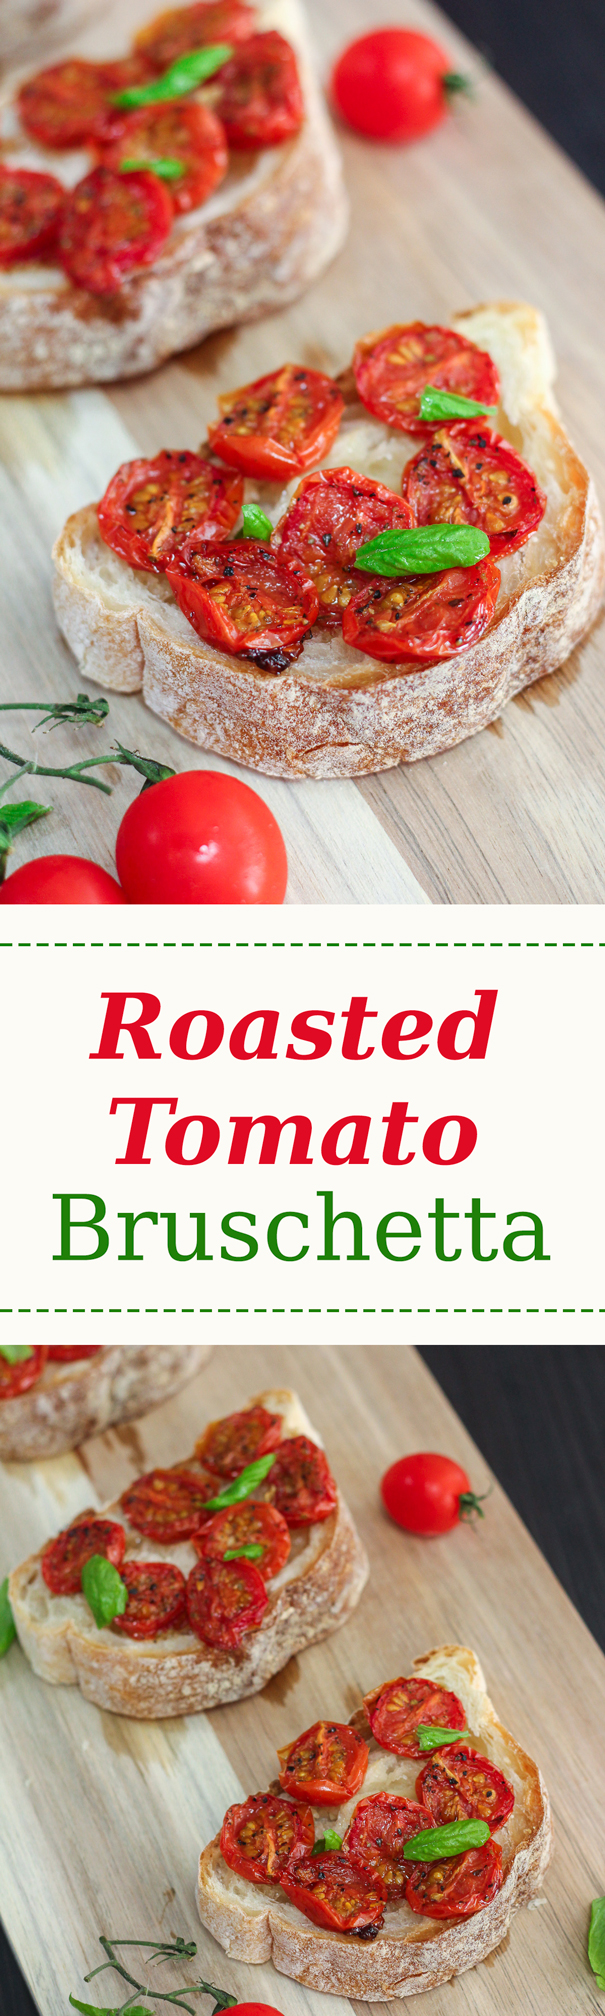 Bruschetta is a traditional Italian snack that is easy yet flavorful.